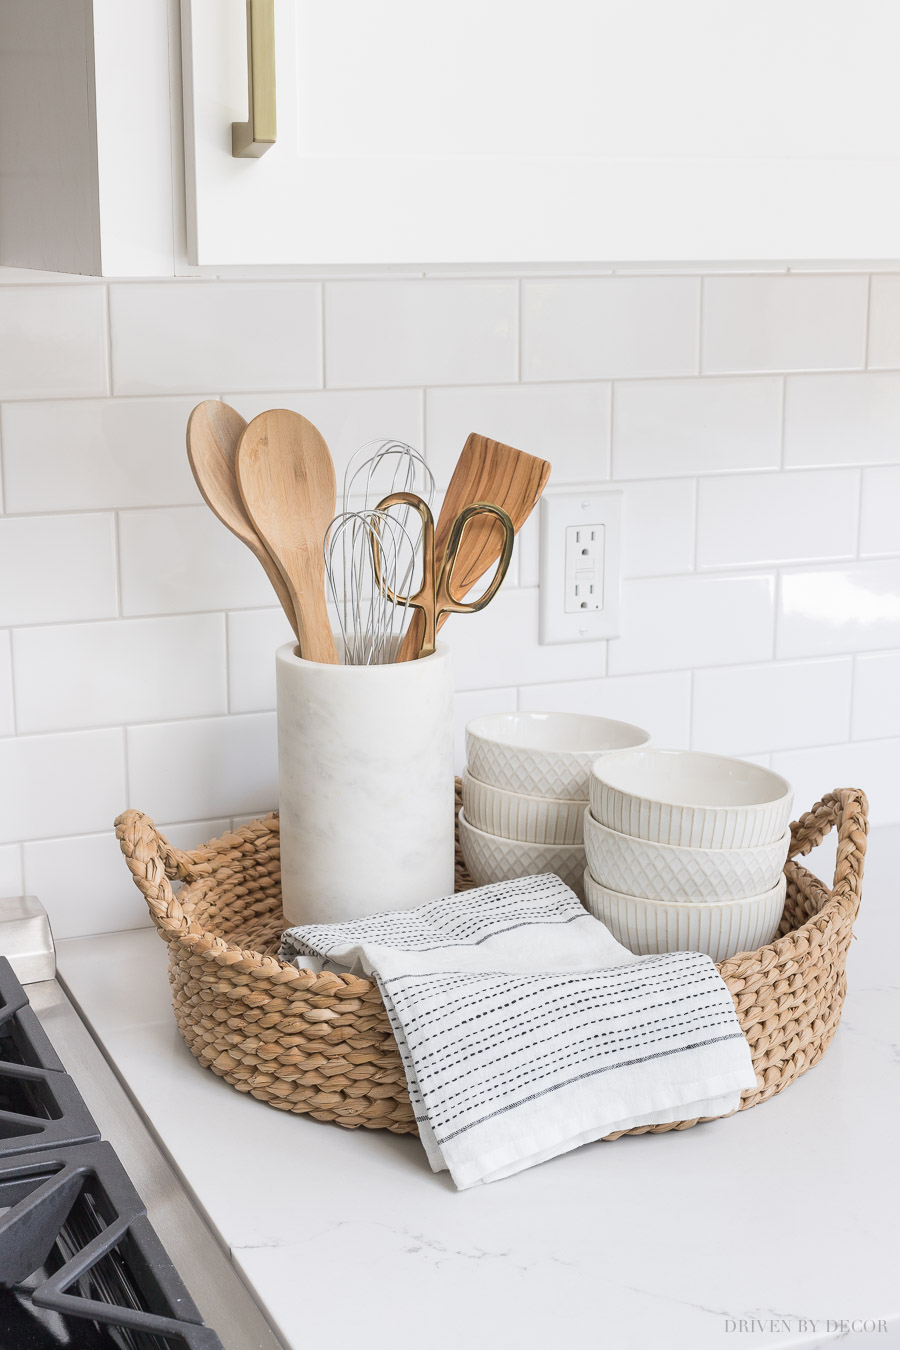 The perfect set-up for next to your range! A round woven tray holds most-used utensils in a pretty marble holder, a hand towel, and white patterned bowls!